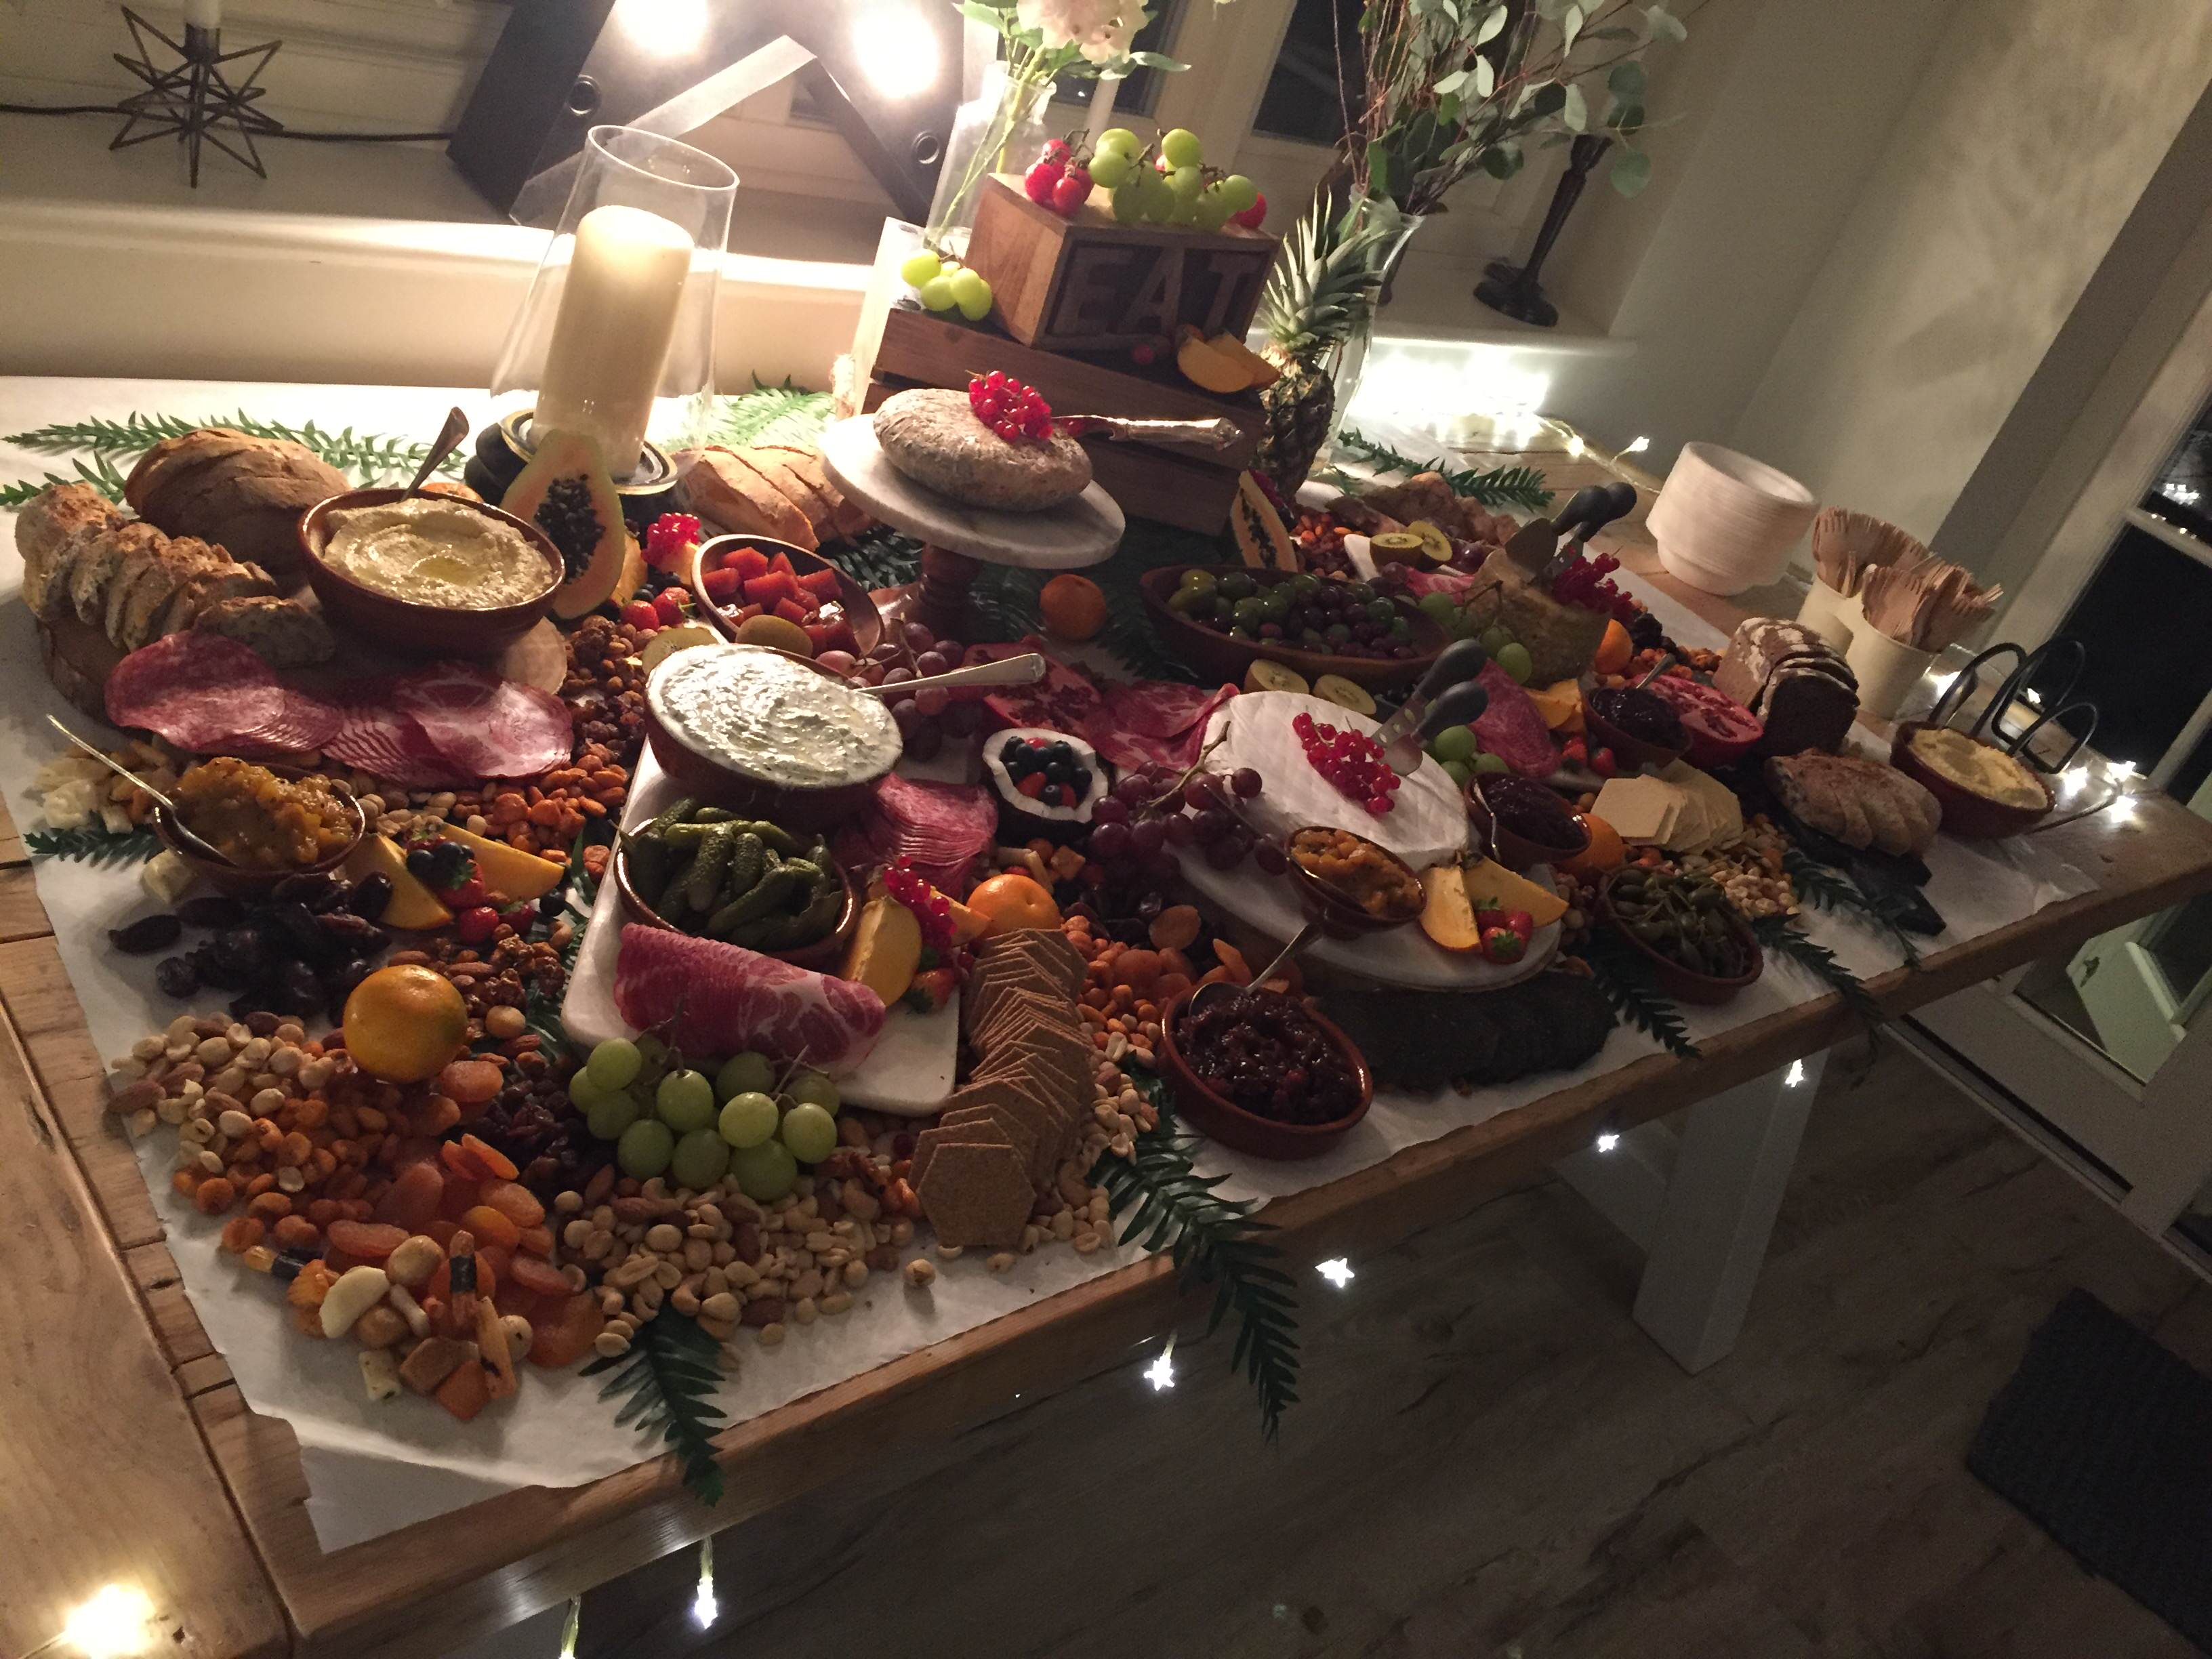 Grazing table from Freast from the Mideast